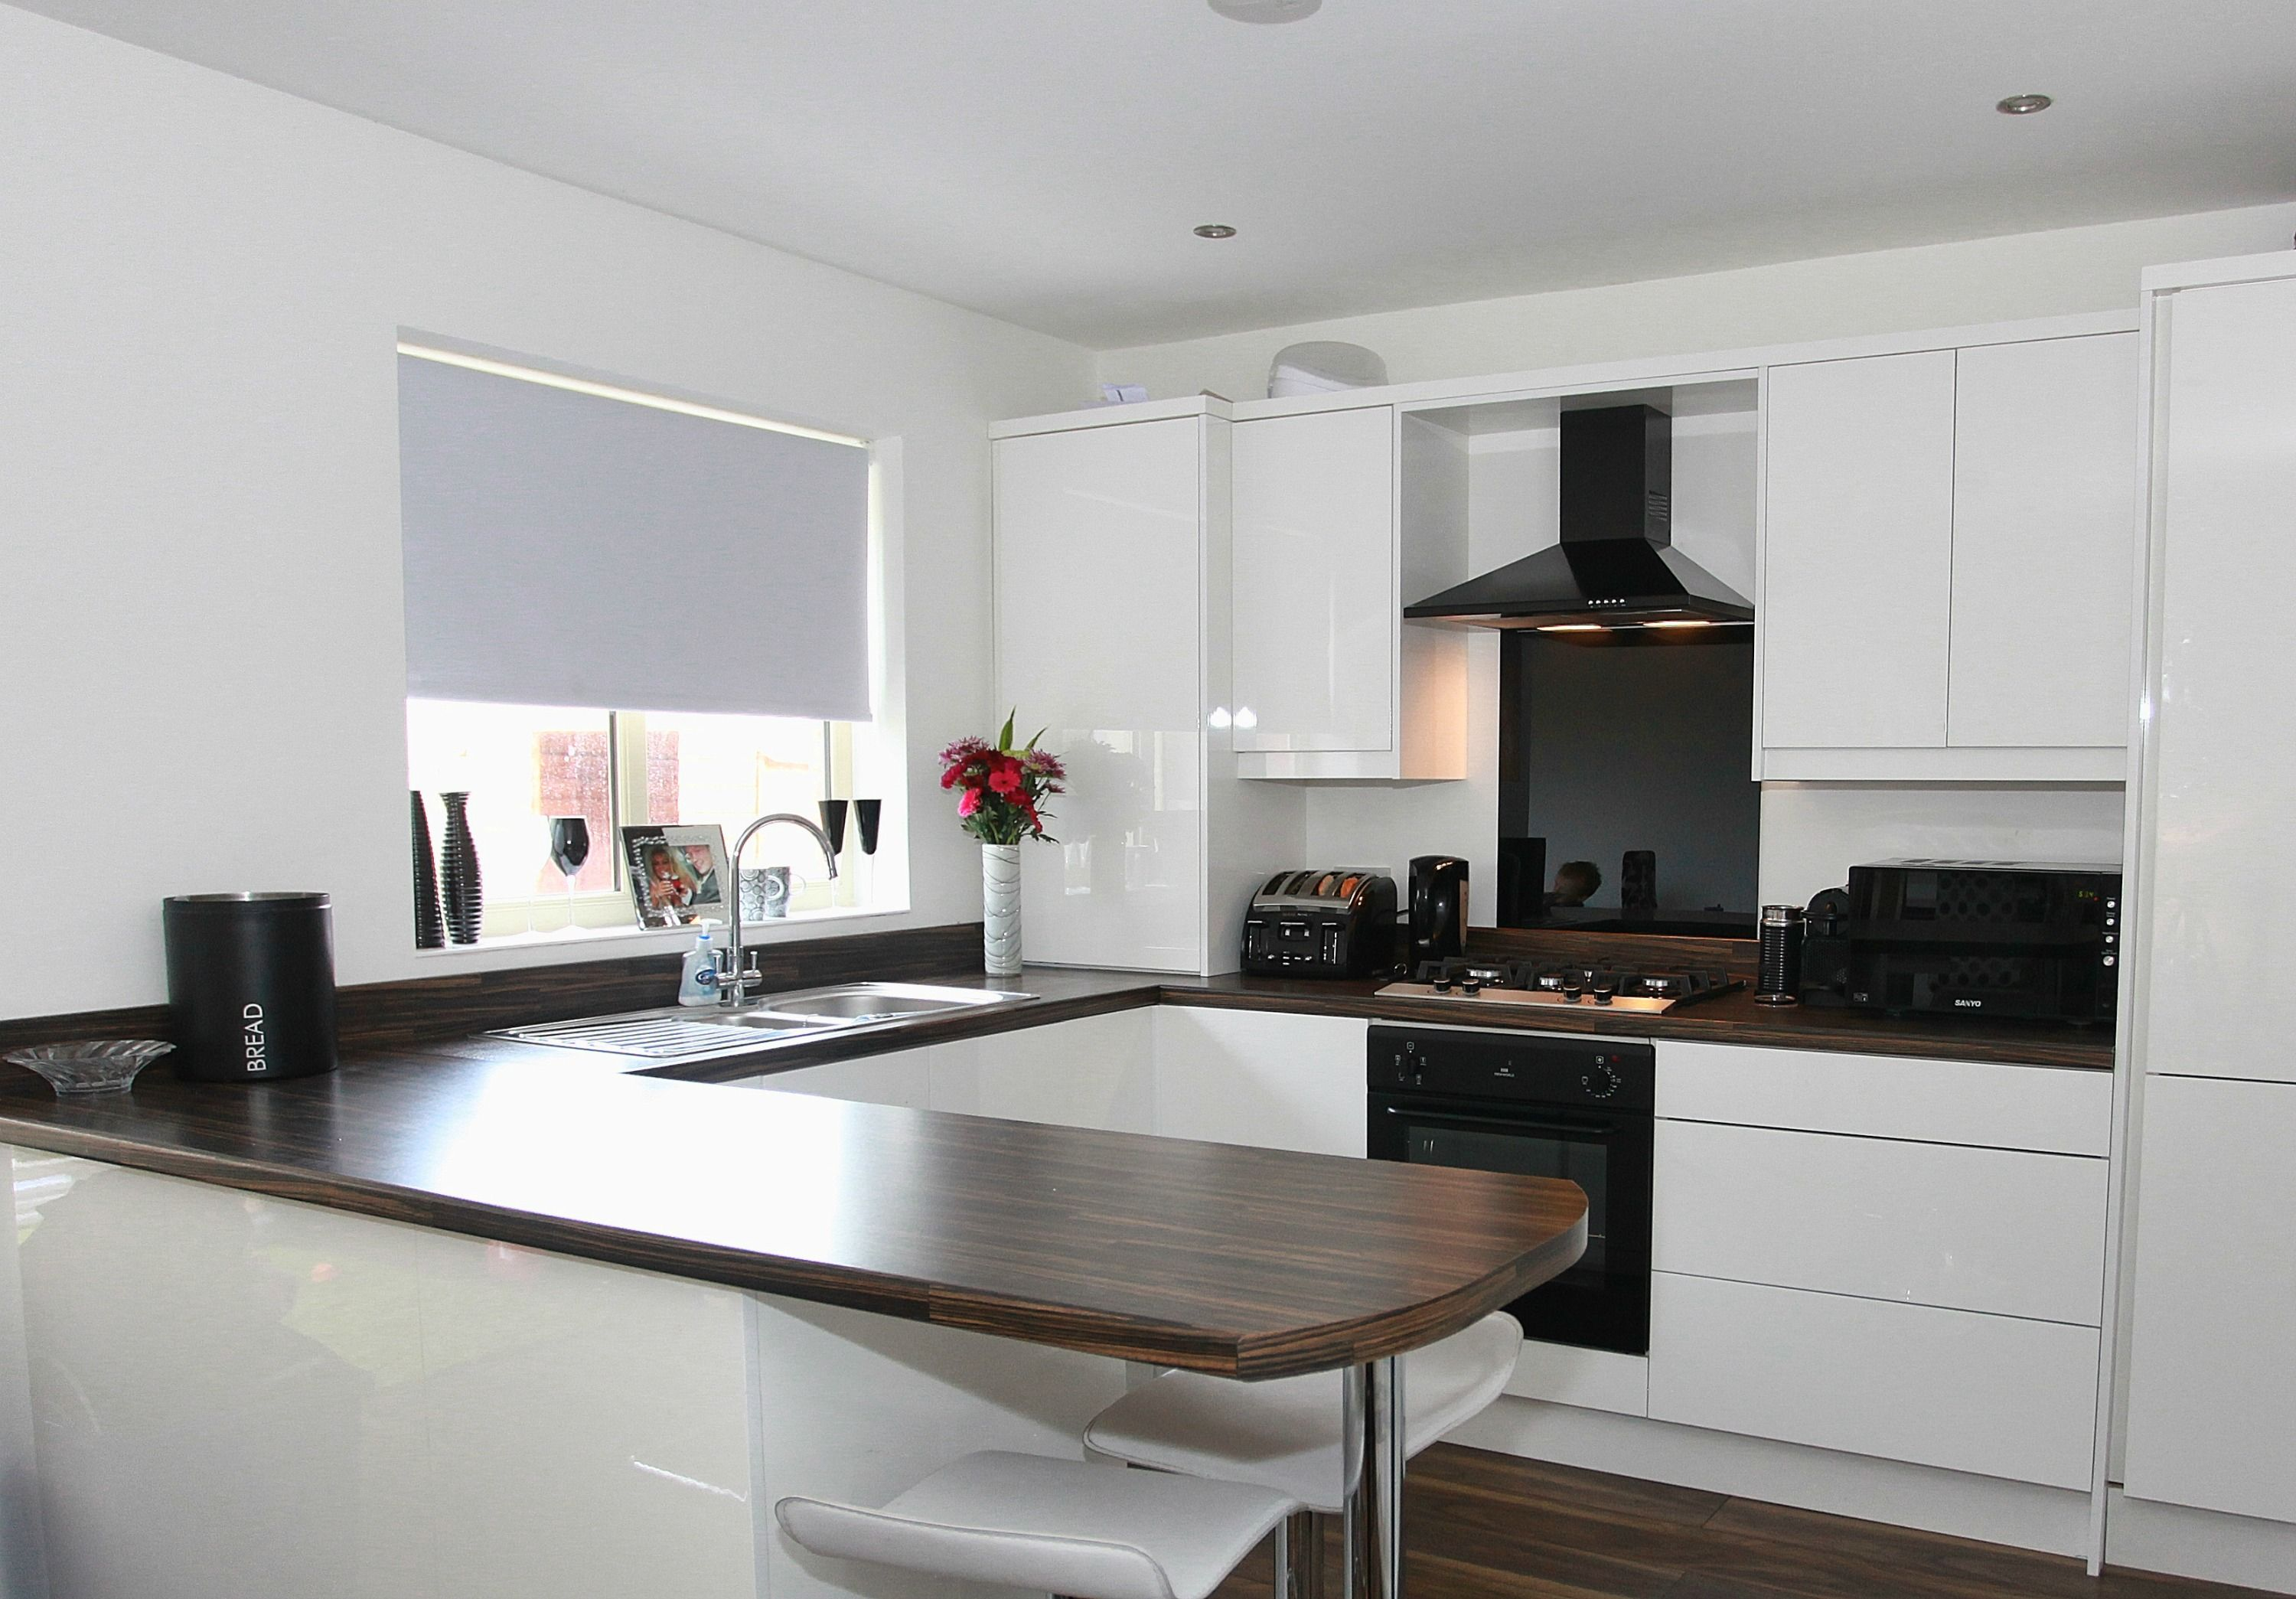 This Black Extractor Fan and Glass Splashback bring a great contrast ...